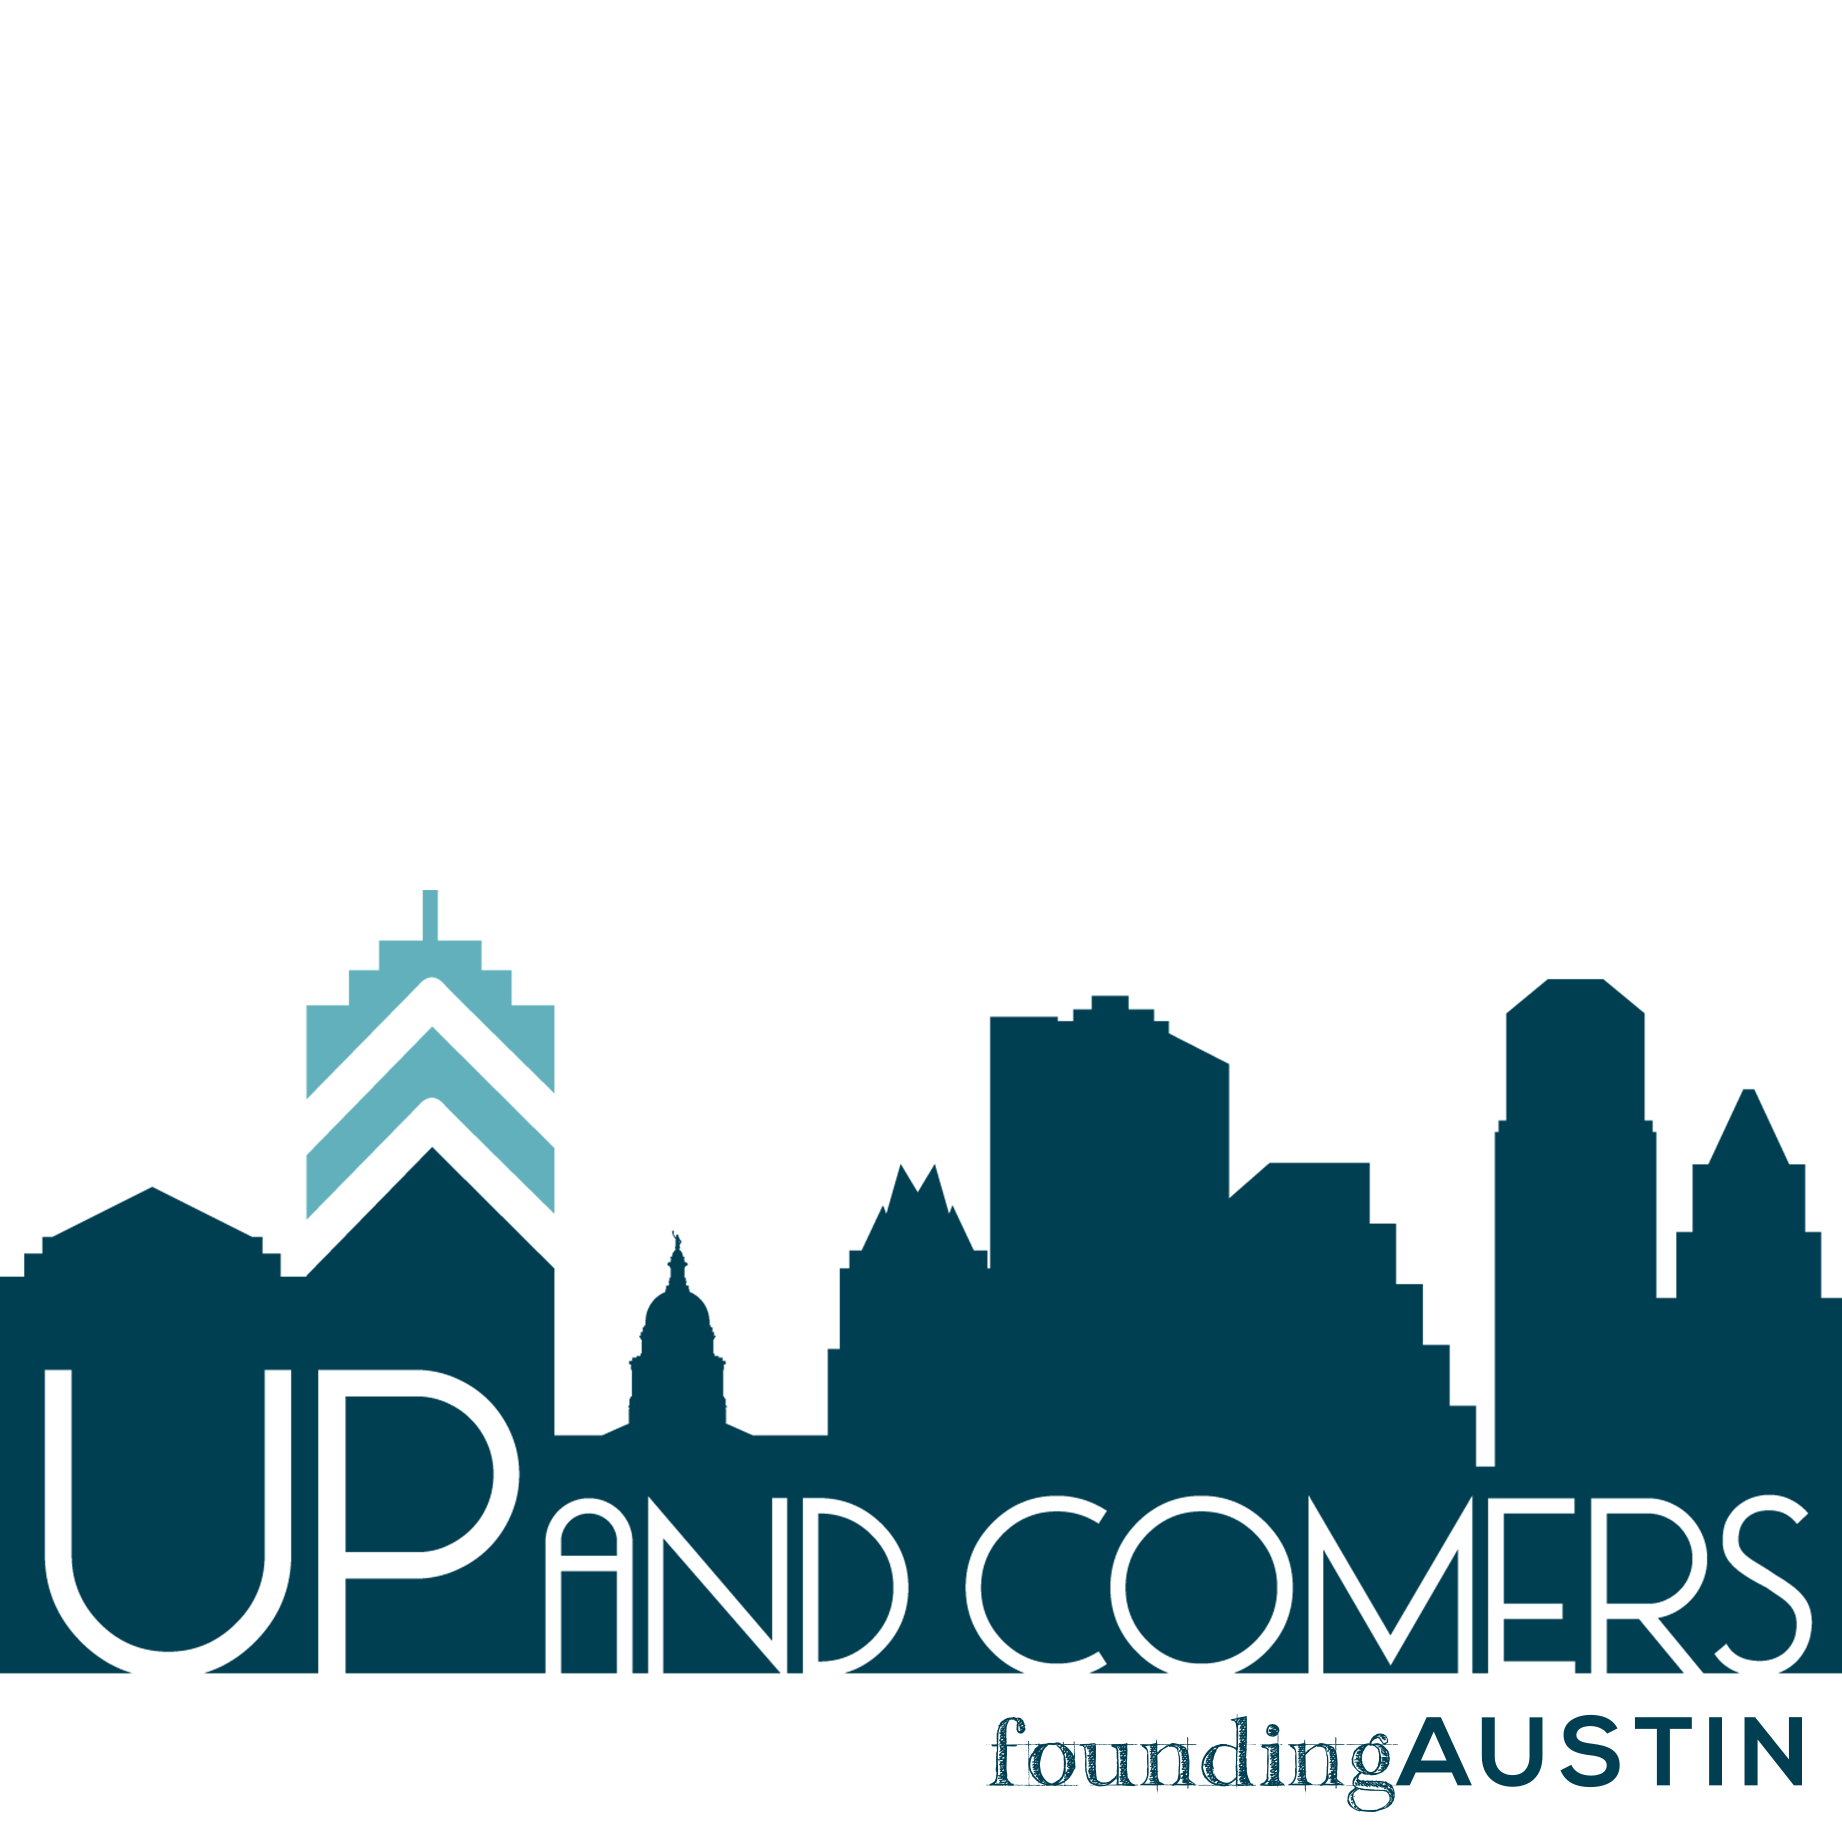 """Up and Comers - Host: Heather Wagner ReedUp and Comers is a show about Austin's startup boom that features guests in conversation with host Wagner Reed on the latest in Austin innovation. """"I am so excited to lead Austinites on a journey through the local startup world,"""" Wagner Reed says. """"We are truly lucky to live in one of the most vibrant, pioneering, socially conscious, and entrepreneurial cities in the U.S. — it's a great moment to shine a light on all the innovation that is happening here."""" In this first season, the series looks closely at the support system that Austin's accelerators and incubators are providing burgeoning entrepreneurs, as well as platforms that are launching these companies into the stratosphere and beyond.Click HERE for the show's websiteClick HERE to watch the podcast on YouTube"""